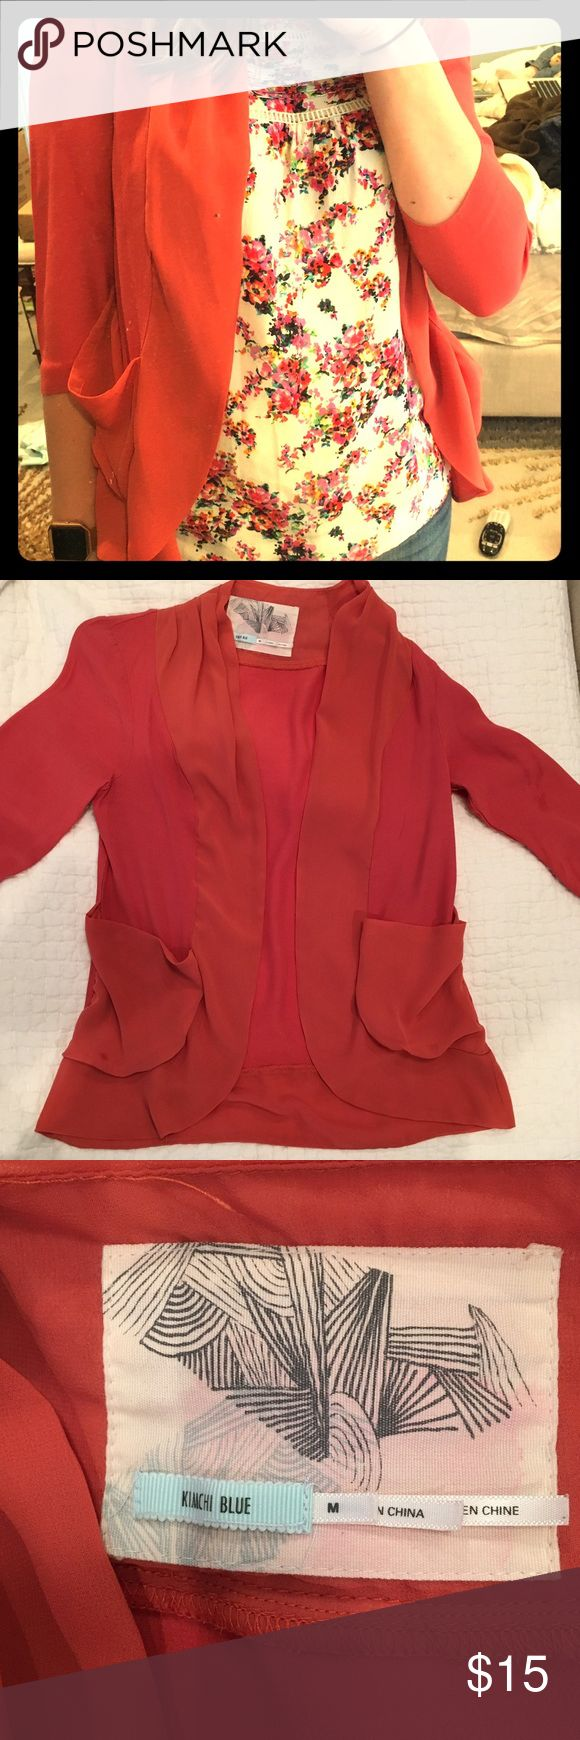 Urban Outfitter Burnt Orange Open Cardigan Blouse Size medium. Great open blouse that looks great over any shirt! Three quarter length sleeves are perfect for the in between weather. Light and flows perfect for a relaxed look! And such a great color! Urban Outfitters Tops